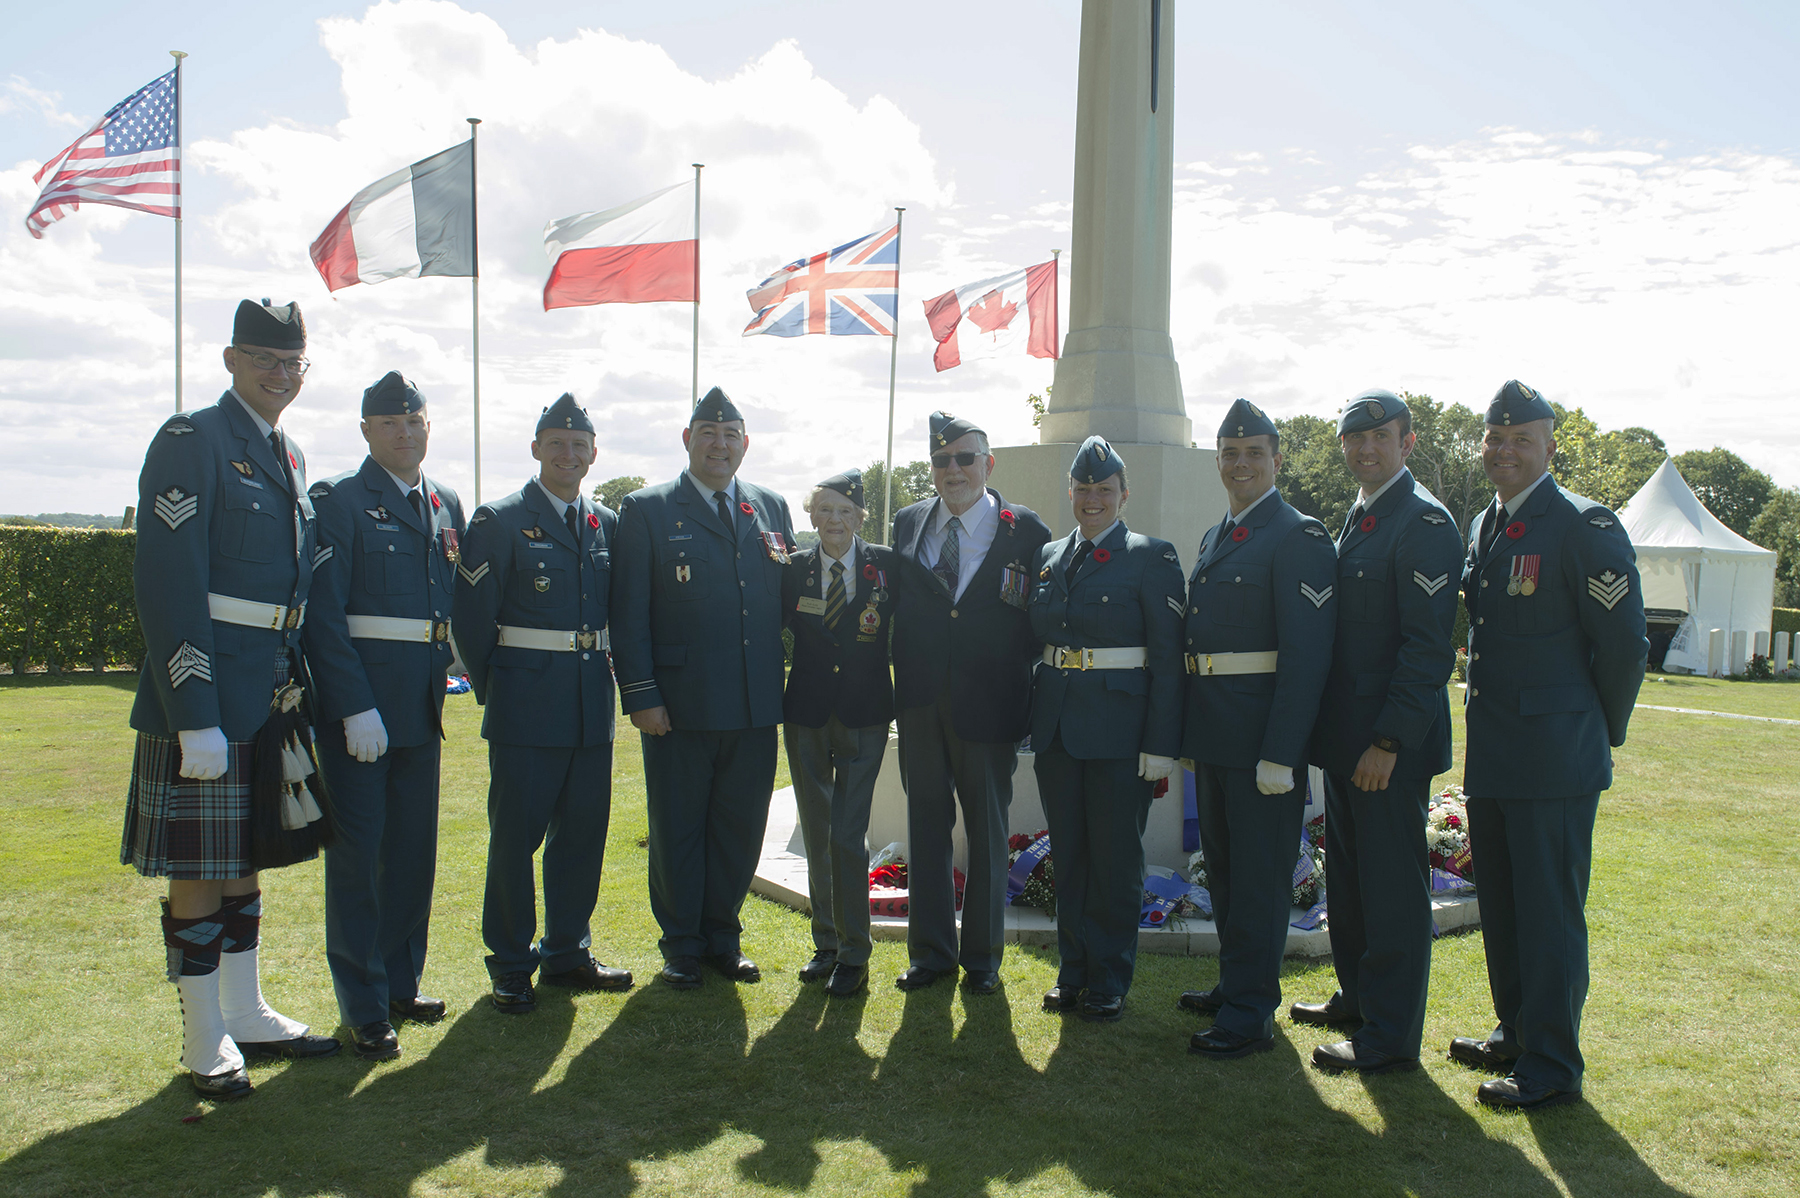 From left, Sergeant Joshua McFarlane, Master Corporal Hugo Belisles, Corporal Alexandre Dingman, nursing officer Captain Cory Fryia, veteran Leading Airwoman Ruth Kells (served 1943-1946), veteran Flight Lieutenant George Brewster (served 1942-1967), Corporal Crystal Roche, Corporal Maxime Caron, Corporal Andrew Kelly, and Sergeant Jeffery Ryan, gather for a photograph at the Canadian War Cemetery during the Canadian Armed Forces' visit to France from August 11 to 21, 2017, to mark 75th anniversary of the Dieppe Raid during the Second World War. PHOTO: Submitted